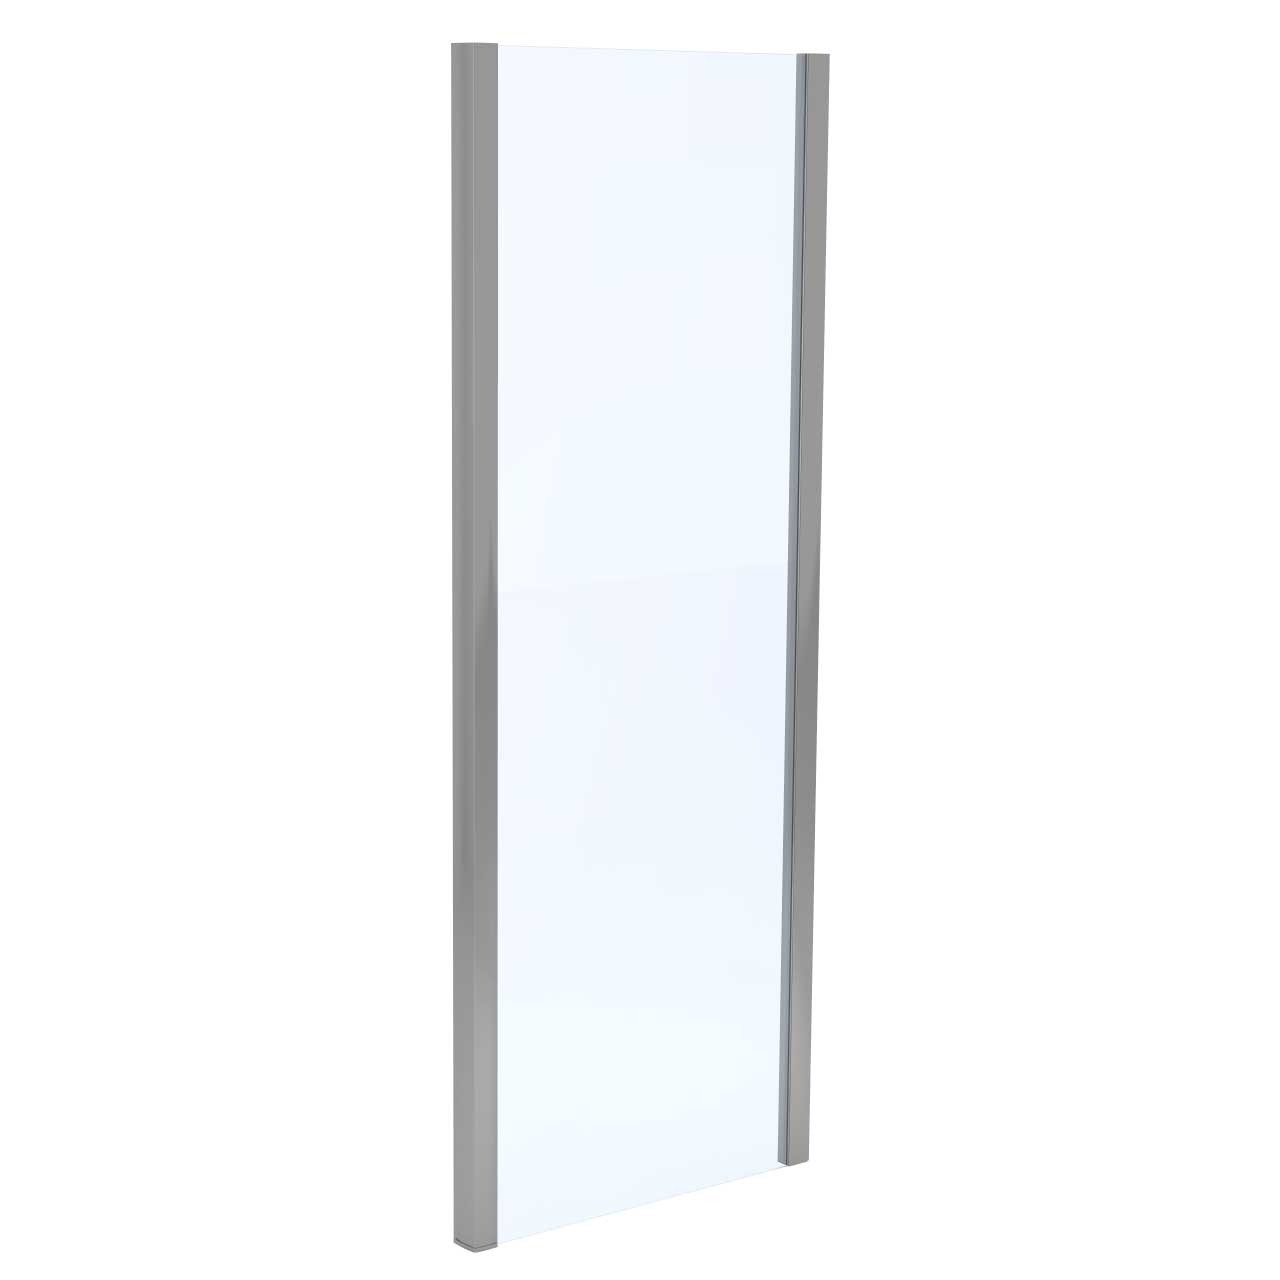 Series 6 900mm x 700mm Hinged Door Shower Enclosure